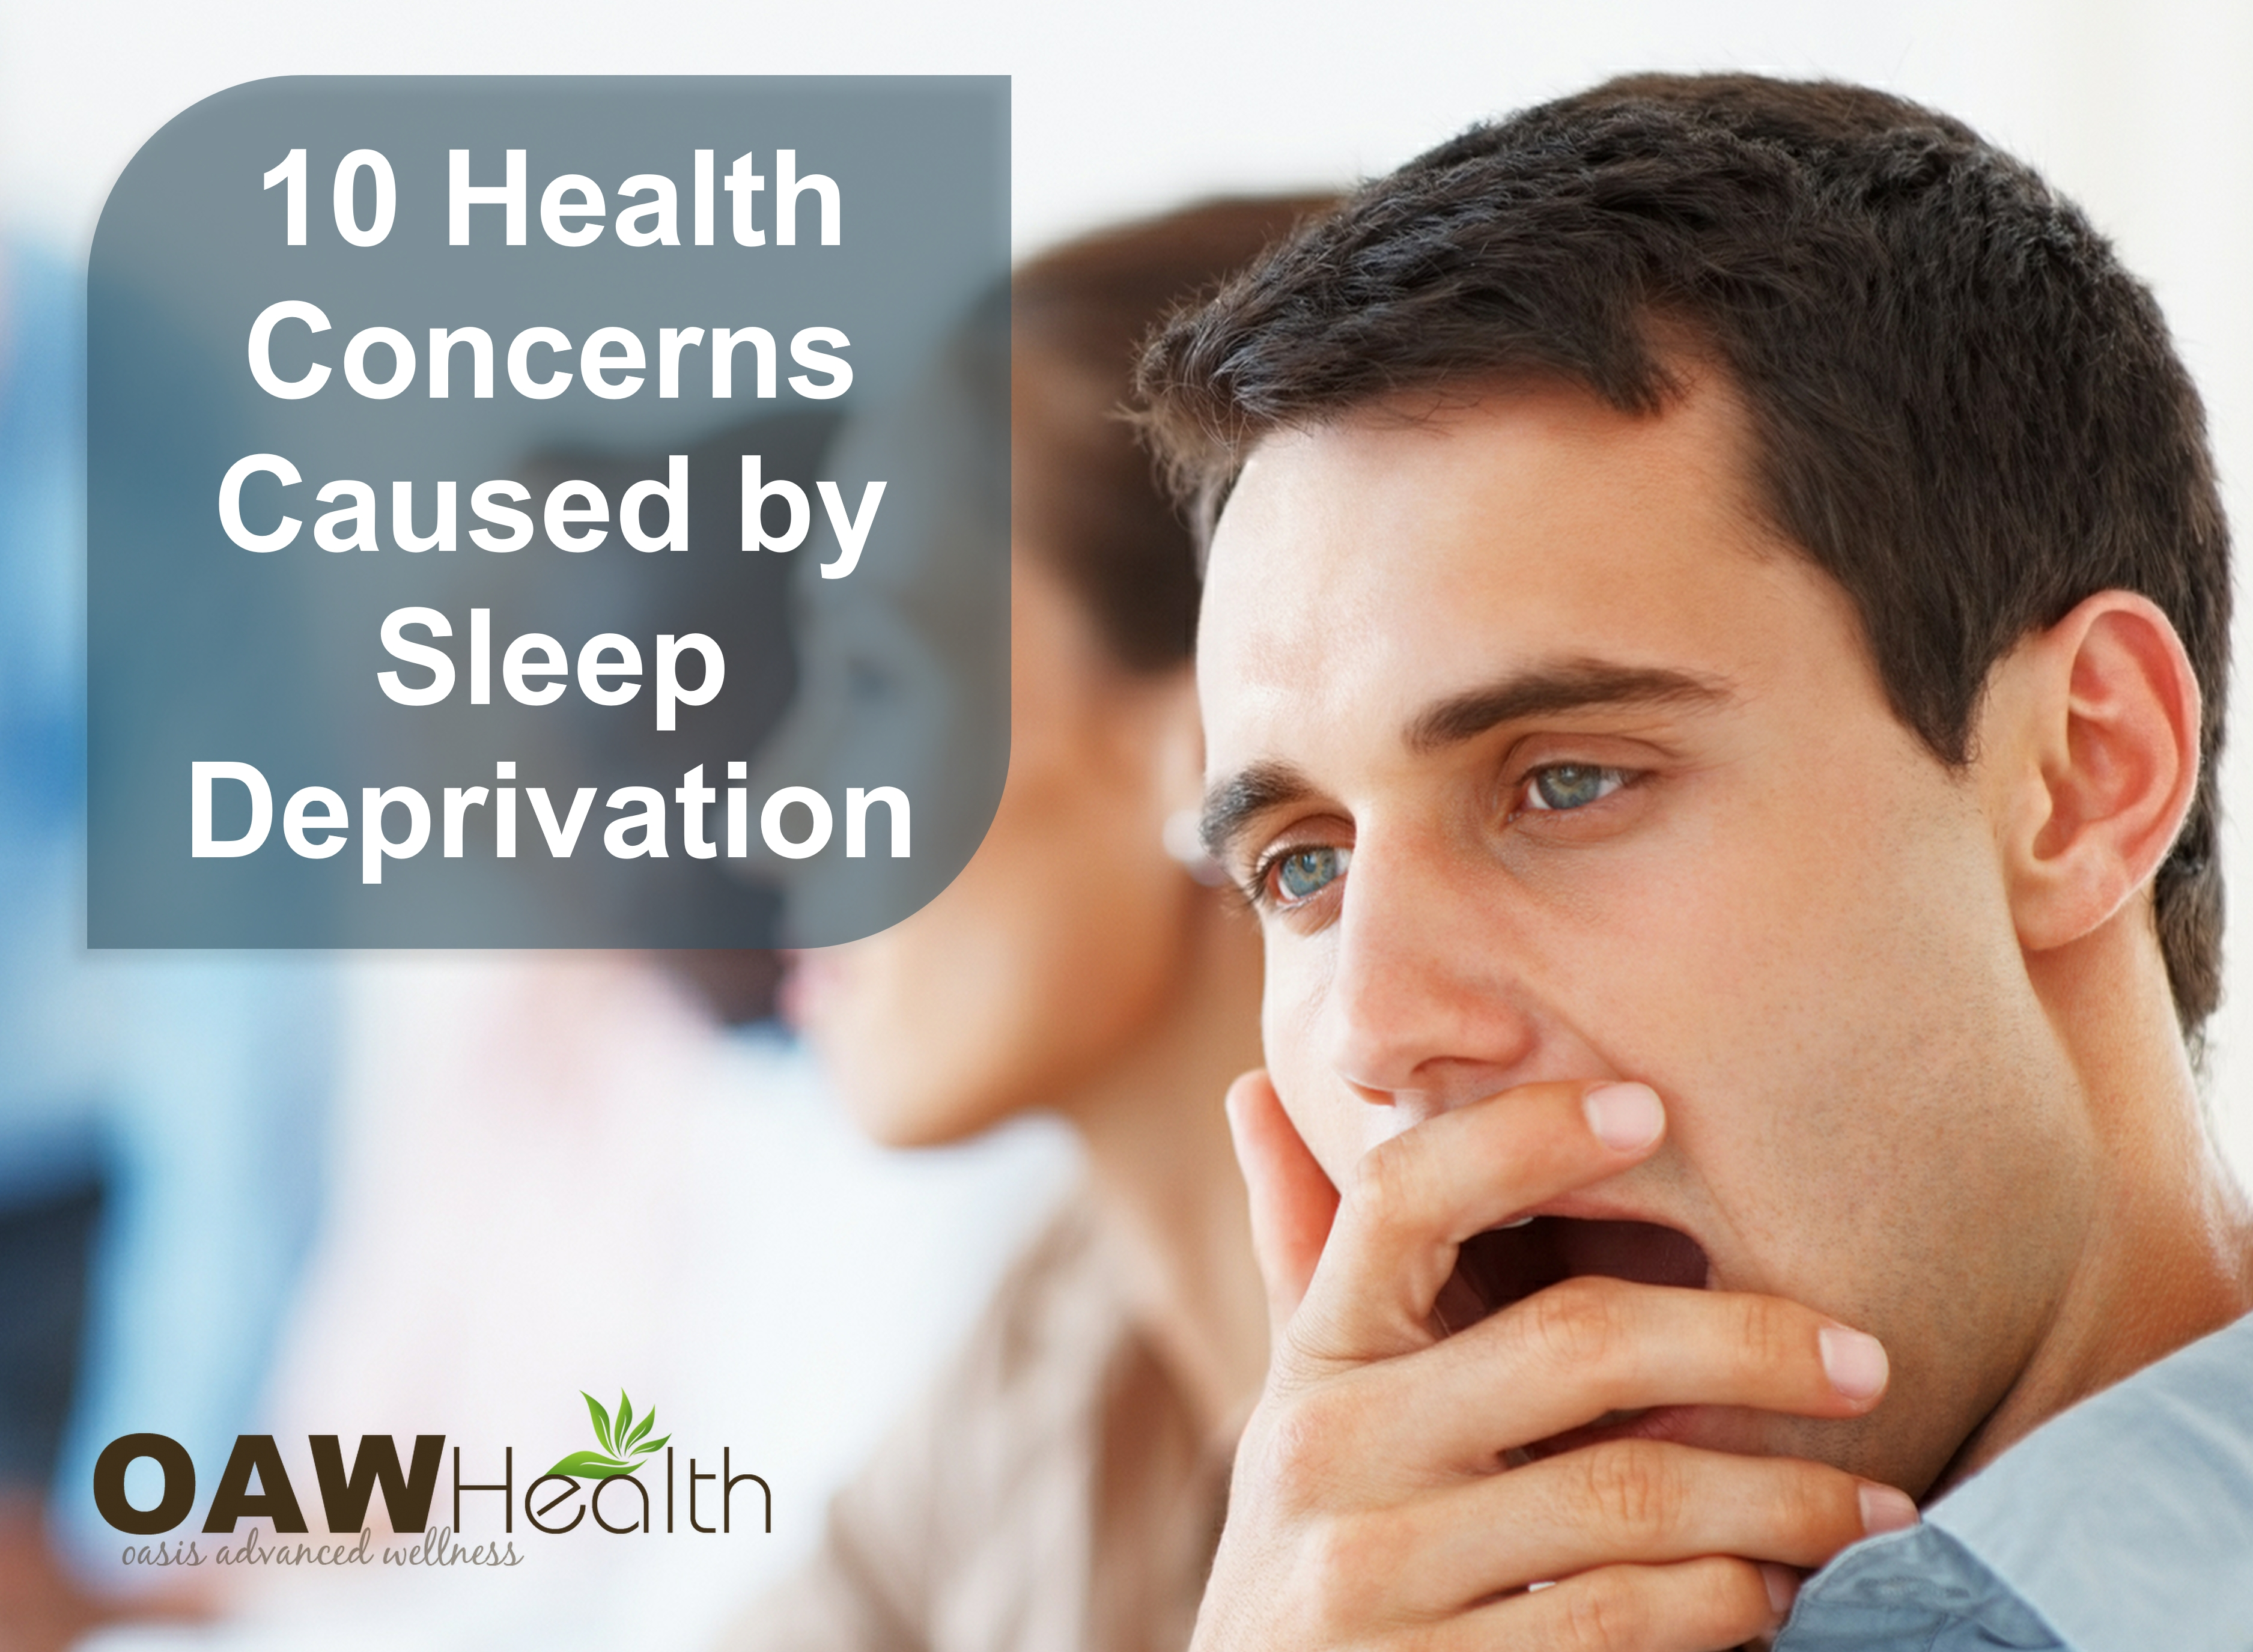 10 Health Concerns Caused by Sleep Deprivation